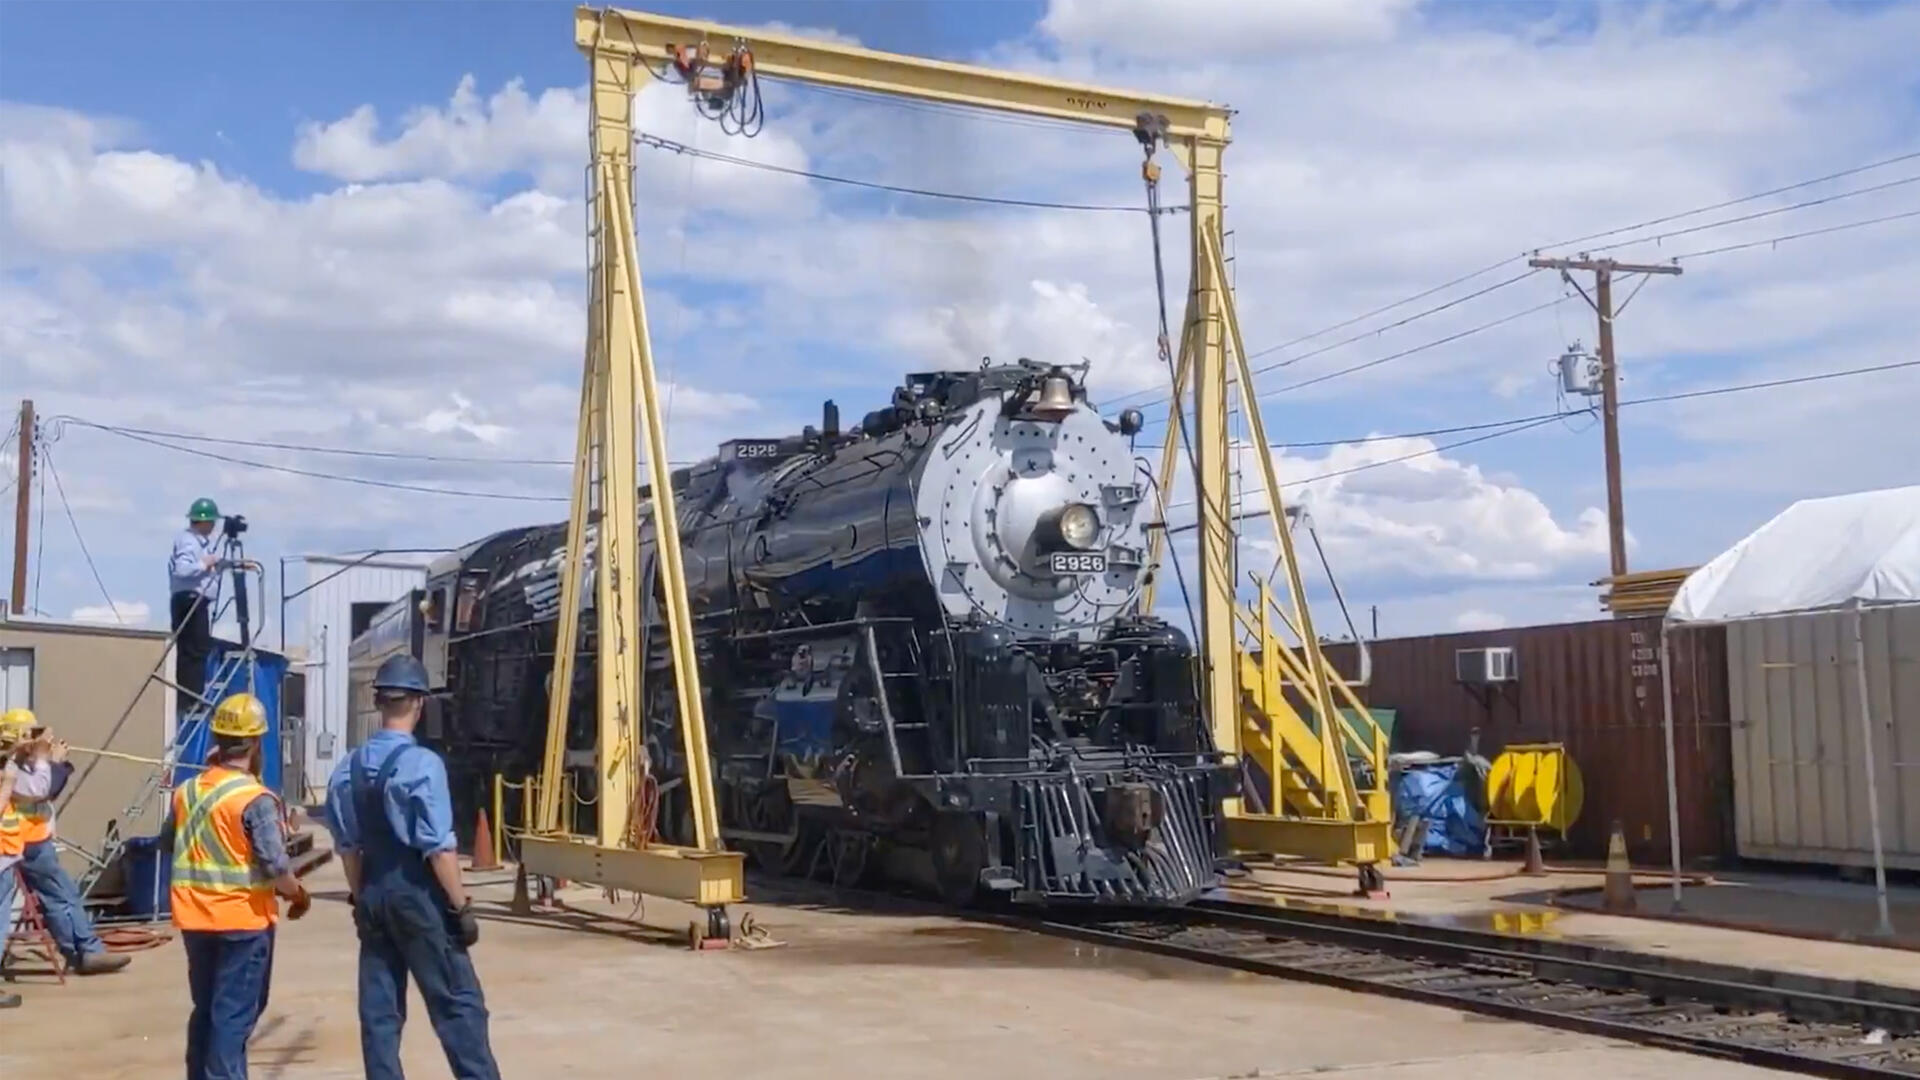 Video: Historic Sante Fe 2926 steam locomotive rumbles back to life